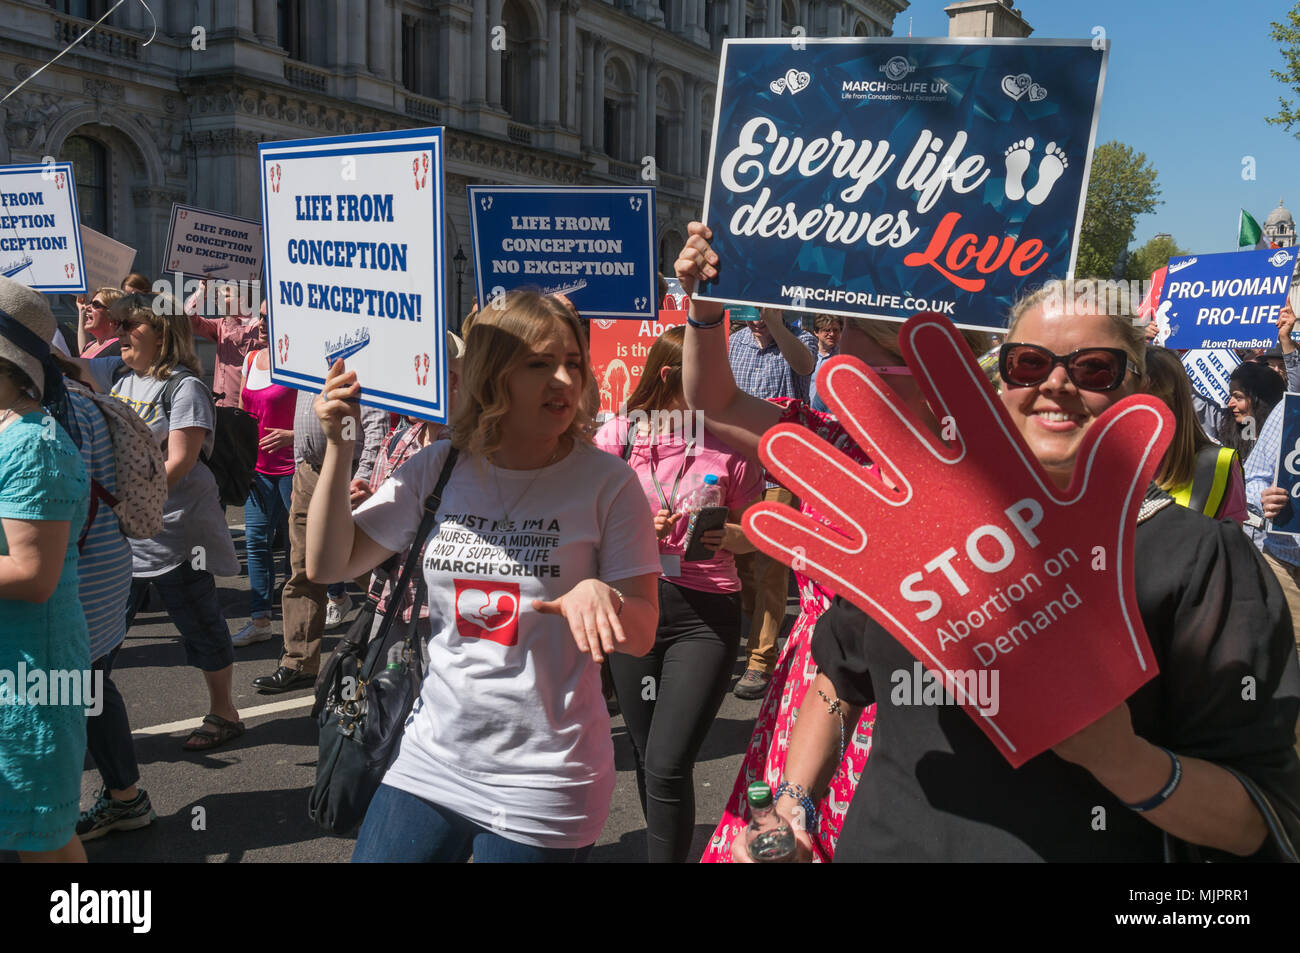 London, UK  5th May 2018  The March for Life UK, a largely Catholic